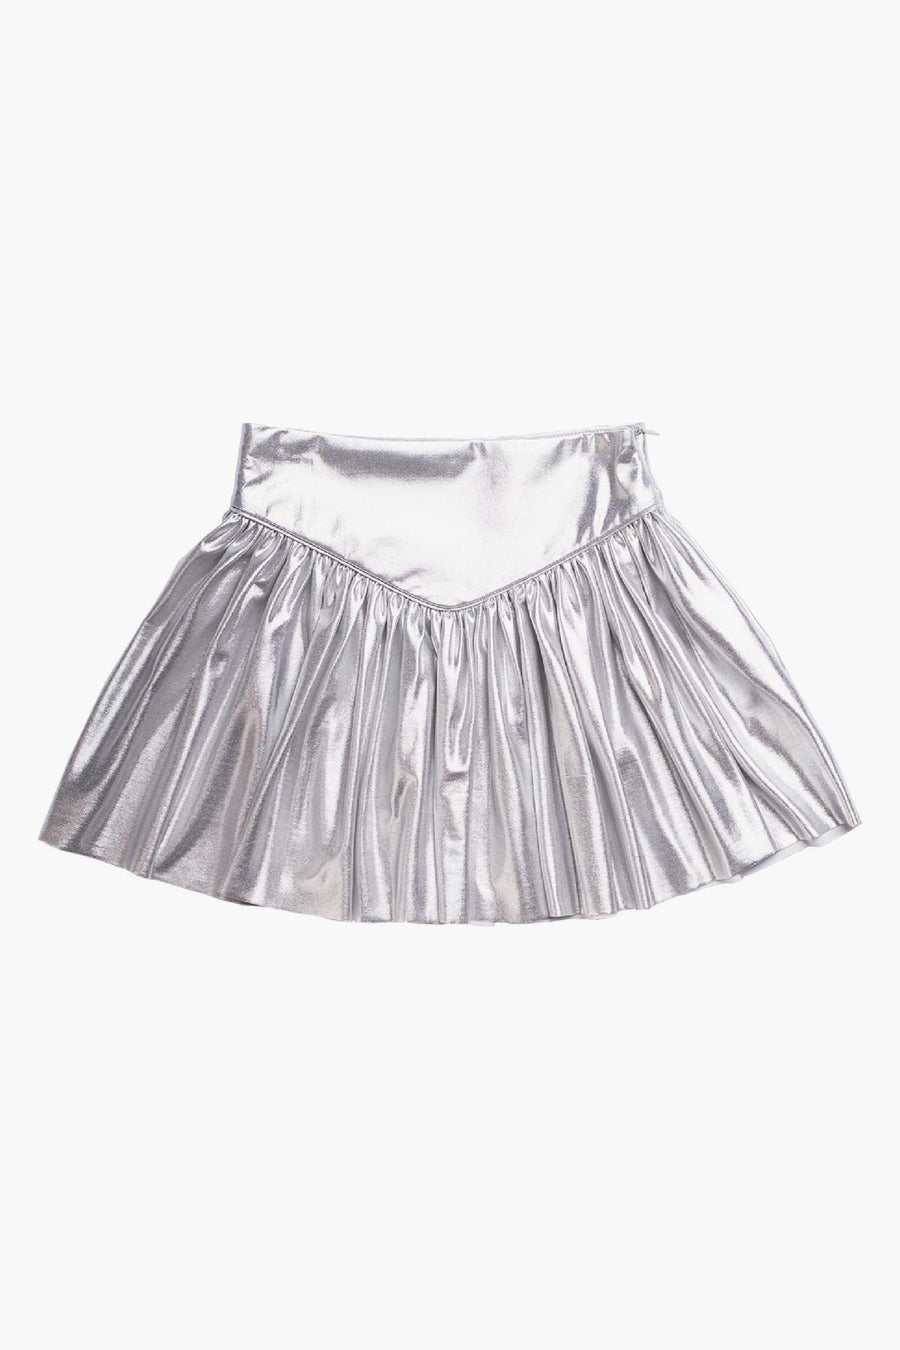 Imoga Heather Pleated Girls Skirt